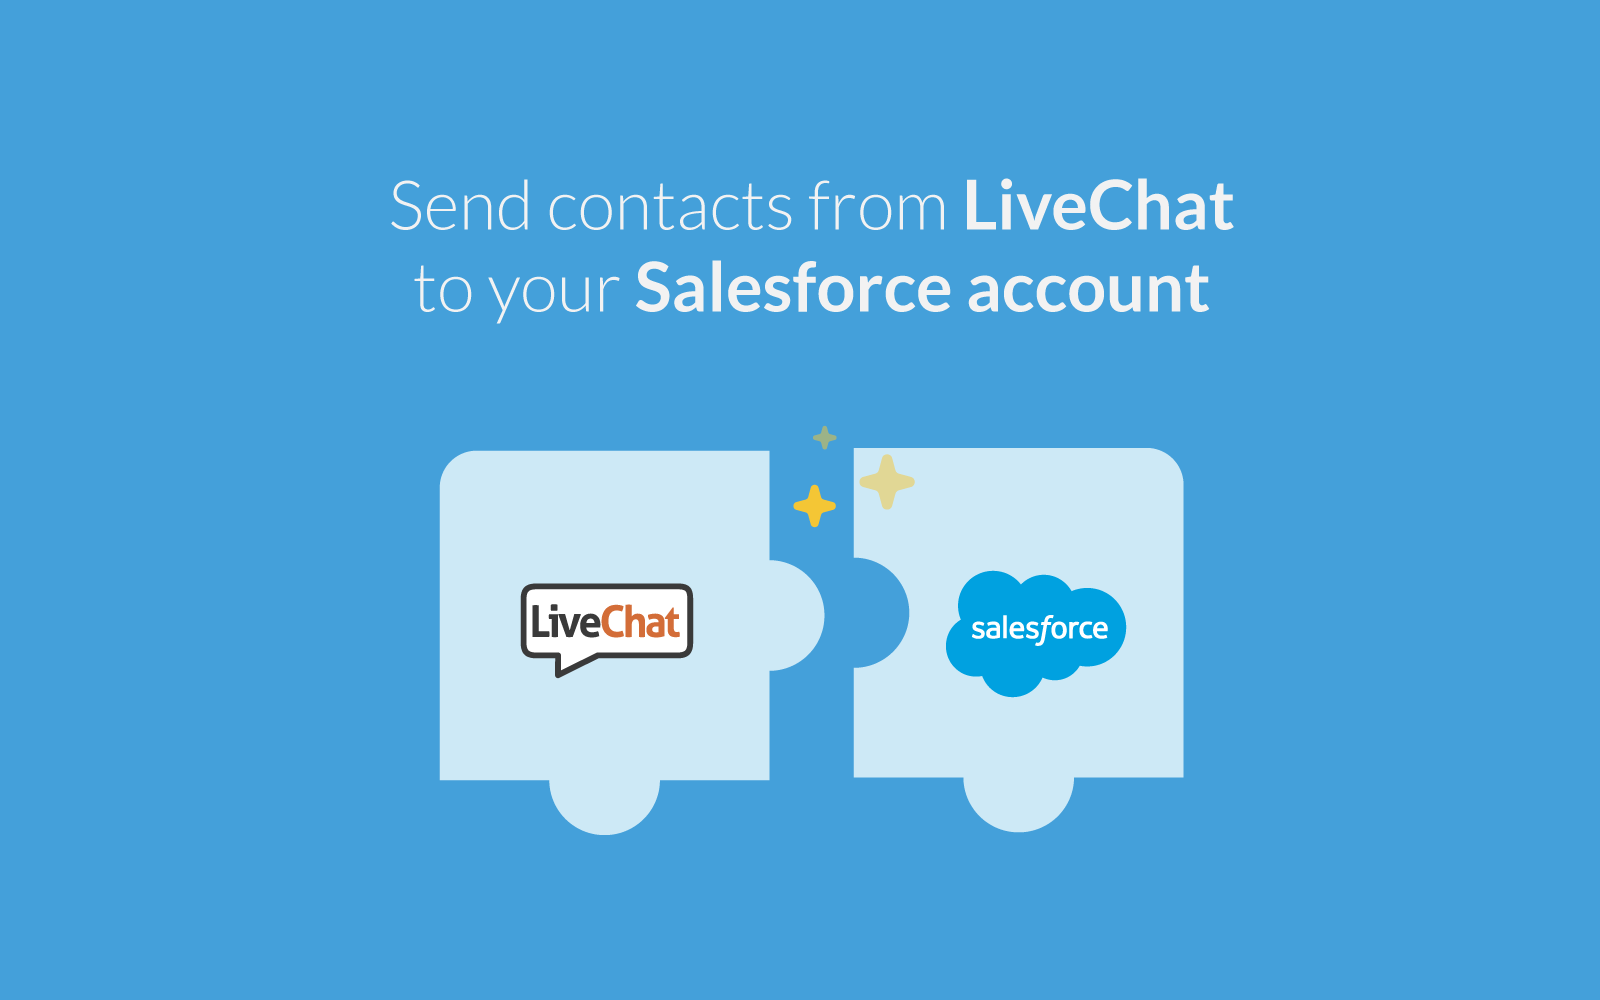 LiveChat integrates with Salesforce